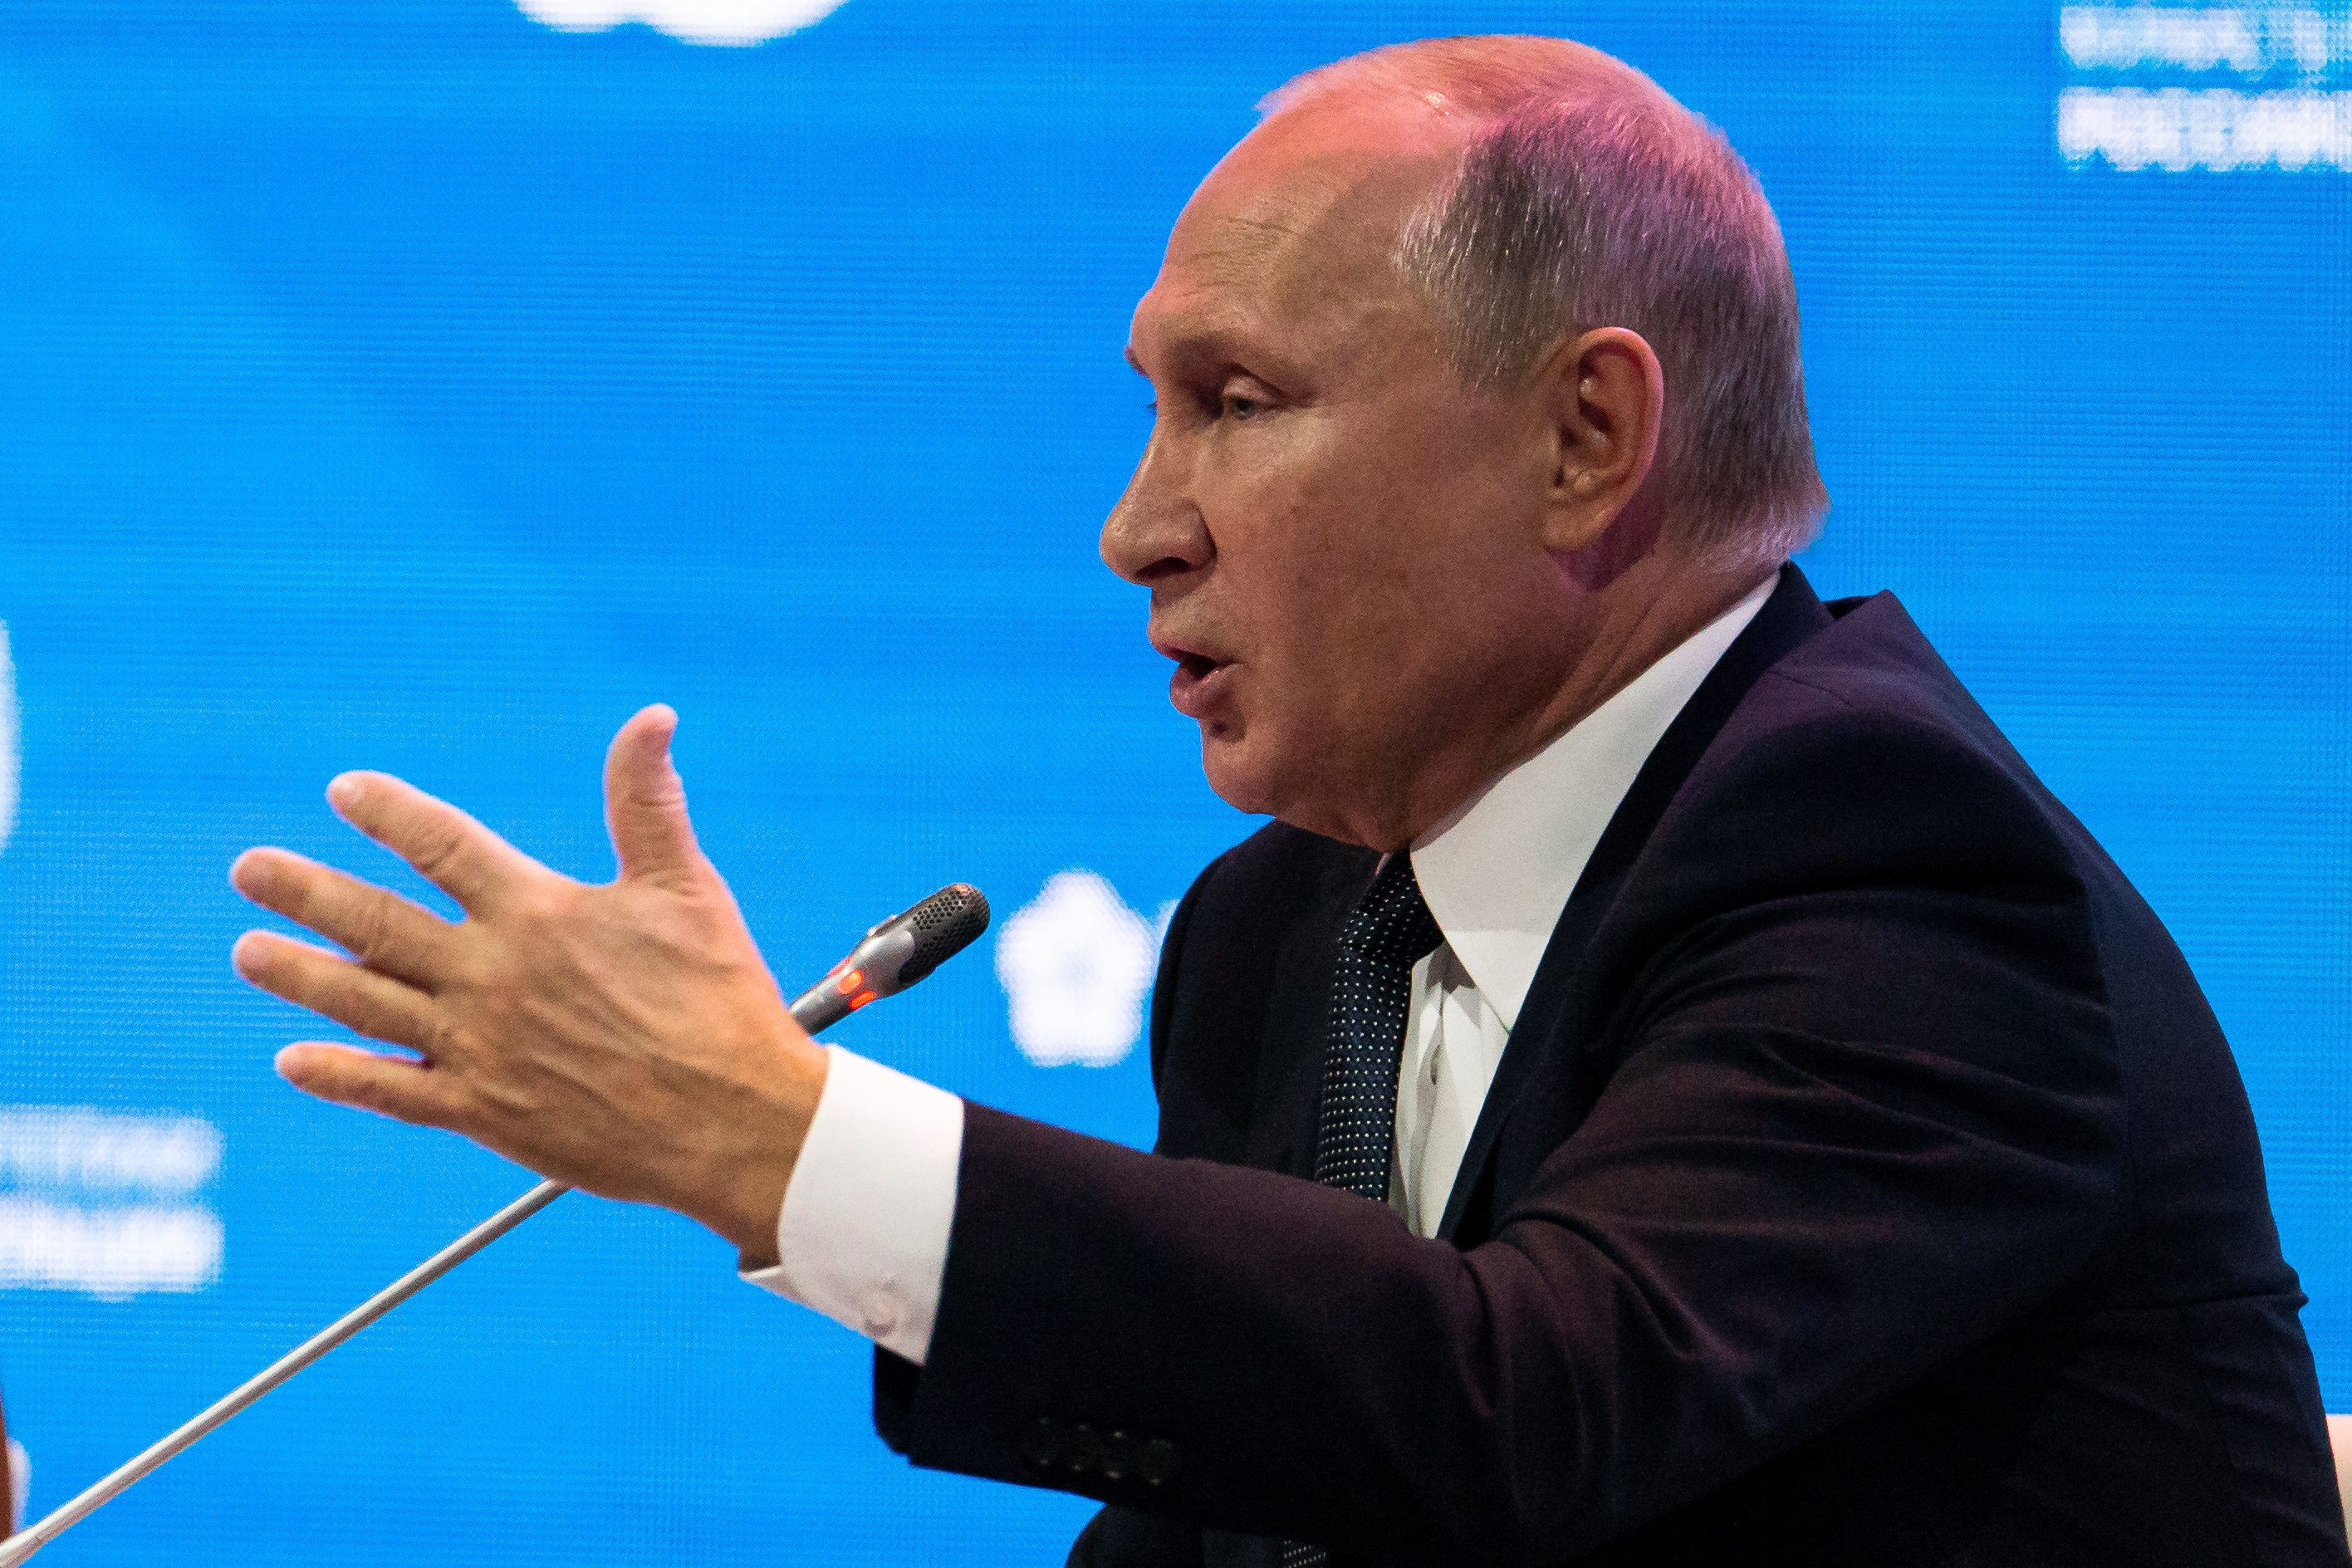 Russian President Vladimir Putin speaks during a session of the Russian Energy Week international forum in Moscow, Oct. 3, 2018.